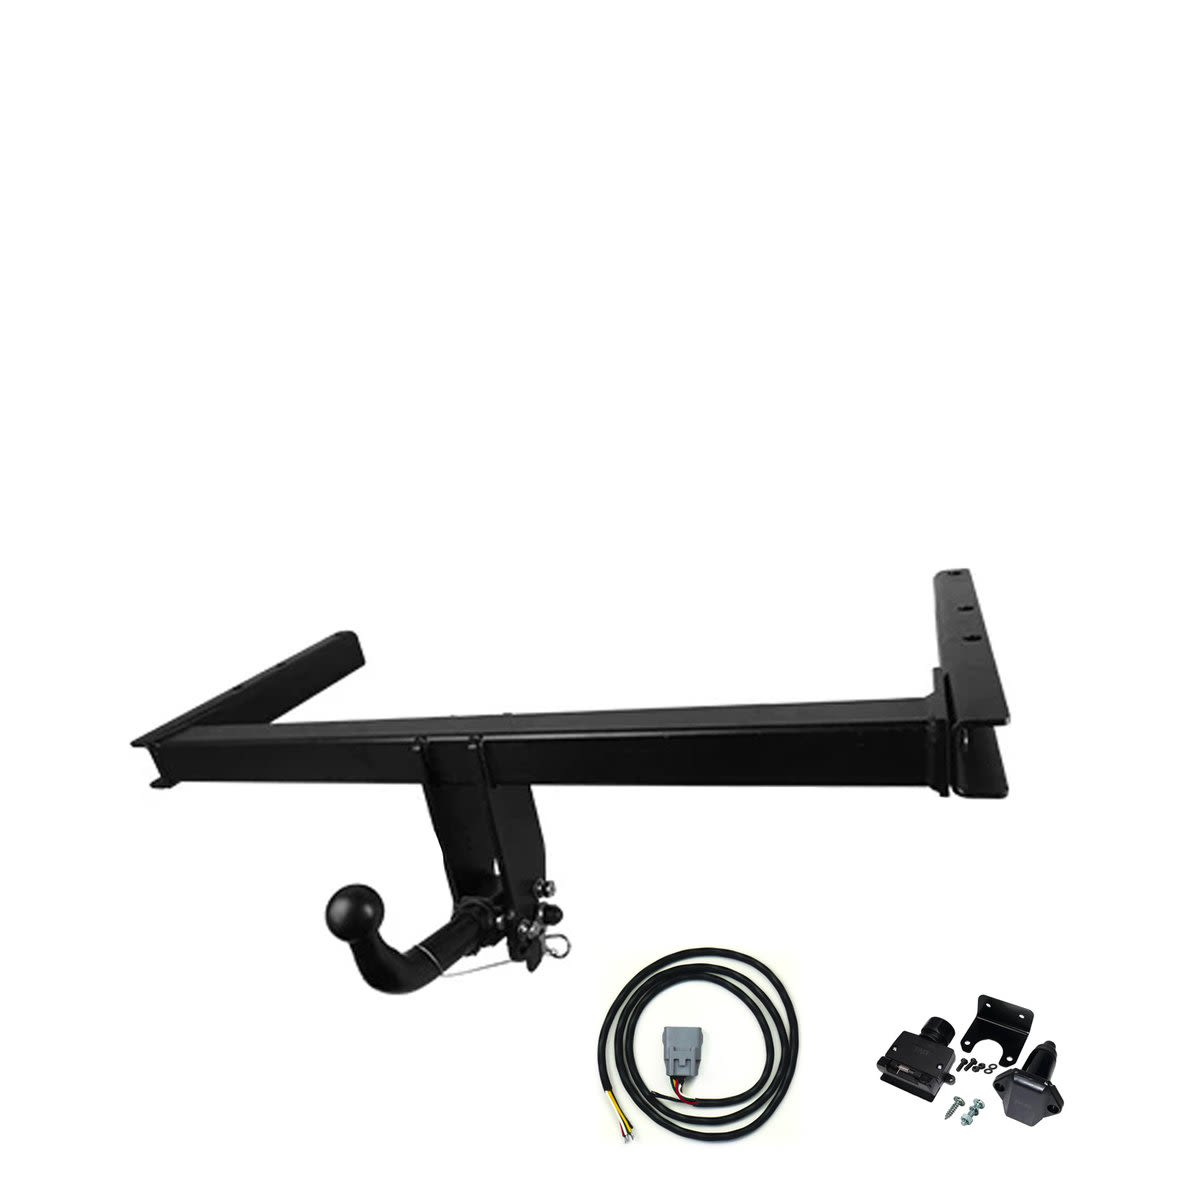 TAG Towbars European Style Tongue to suit Citroen DS3 (11/2009 - 07/2015)